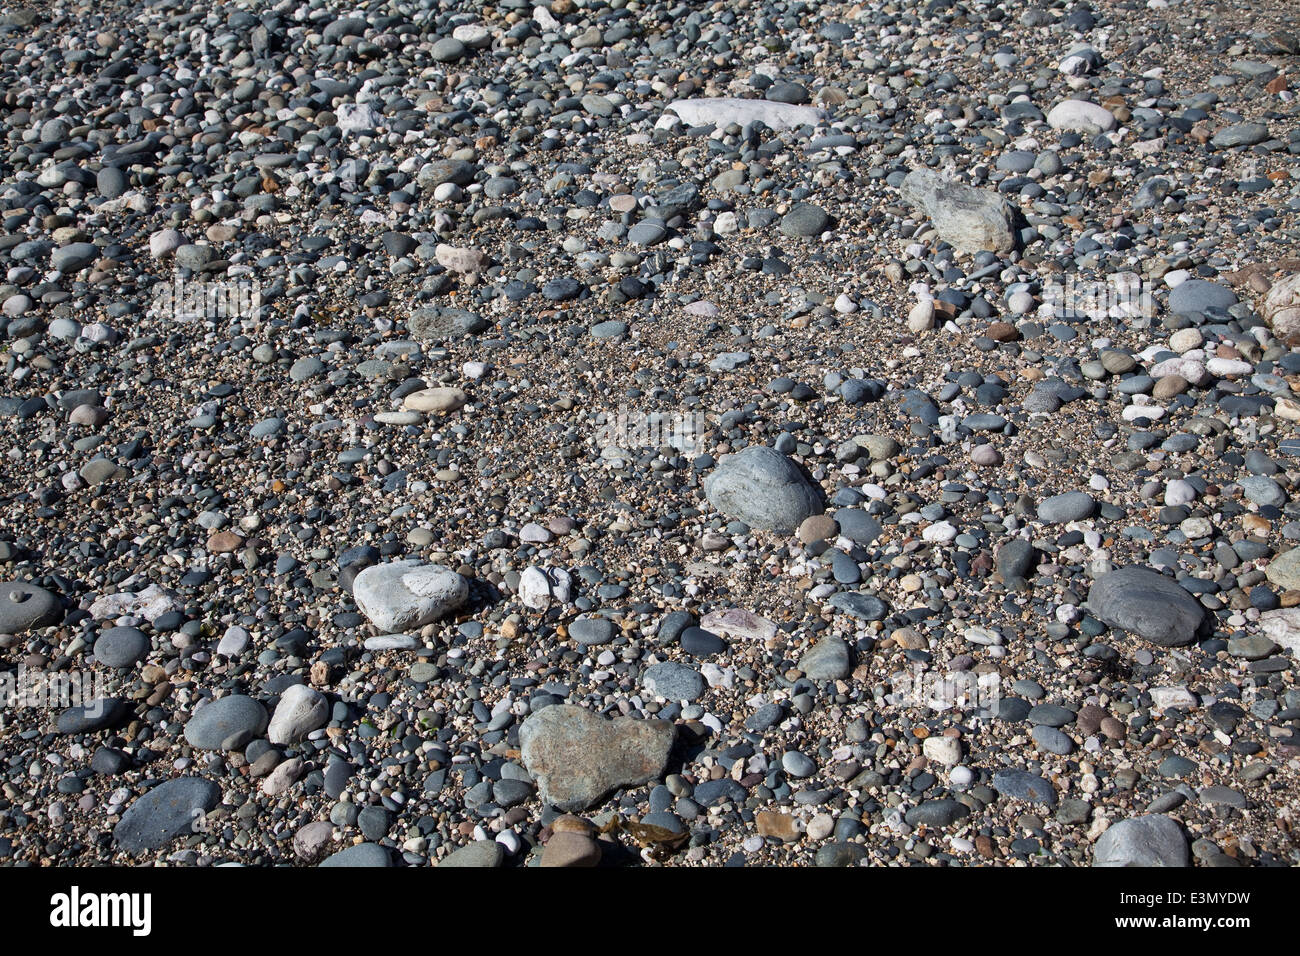 Pebbles and rocks on a stony beach at low tide among sand - Stock Image